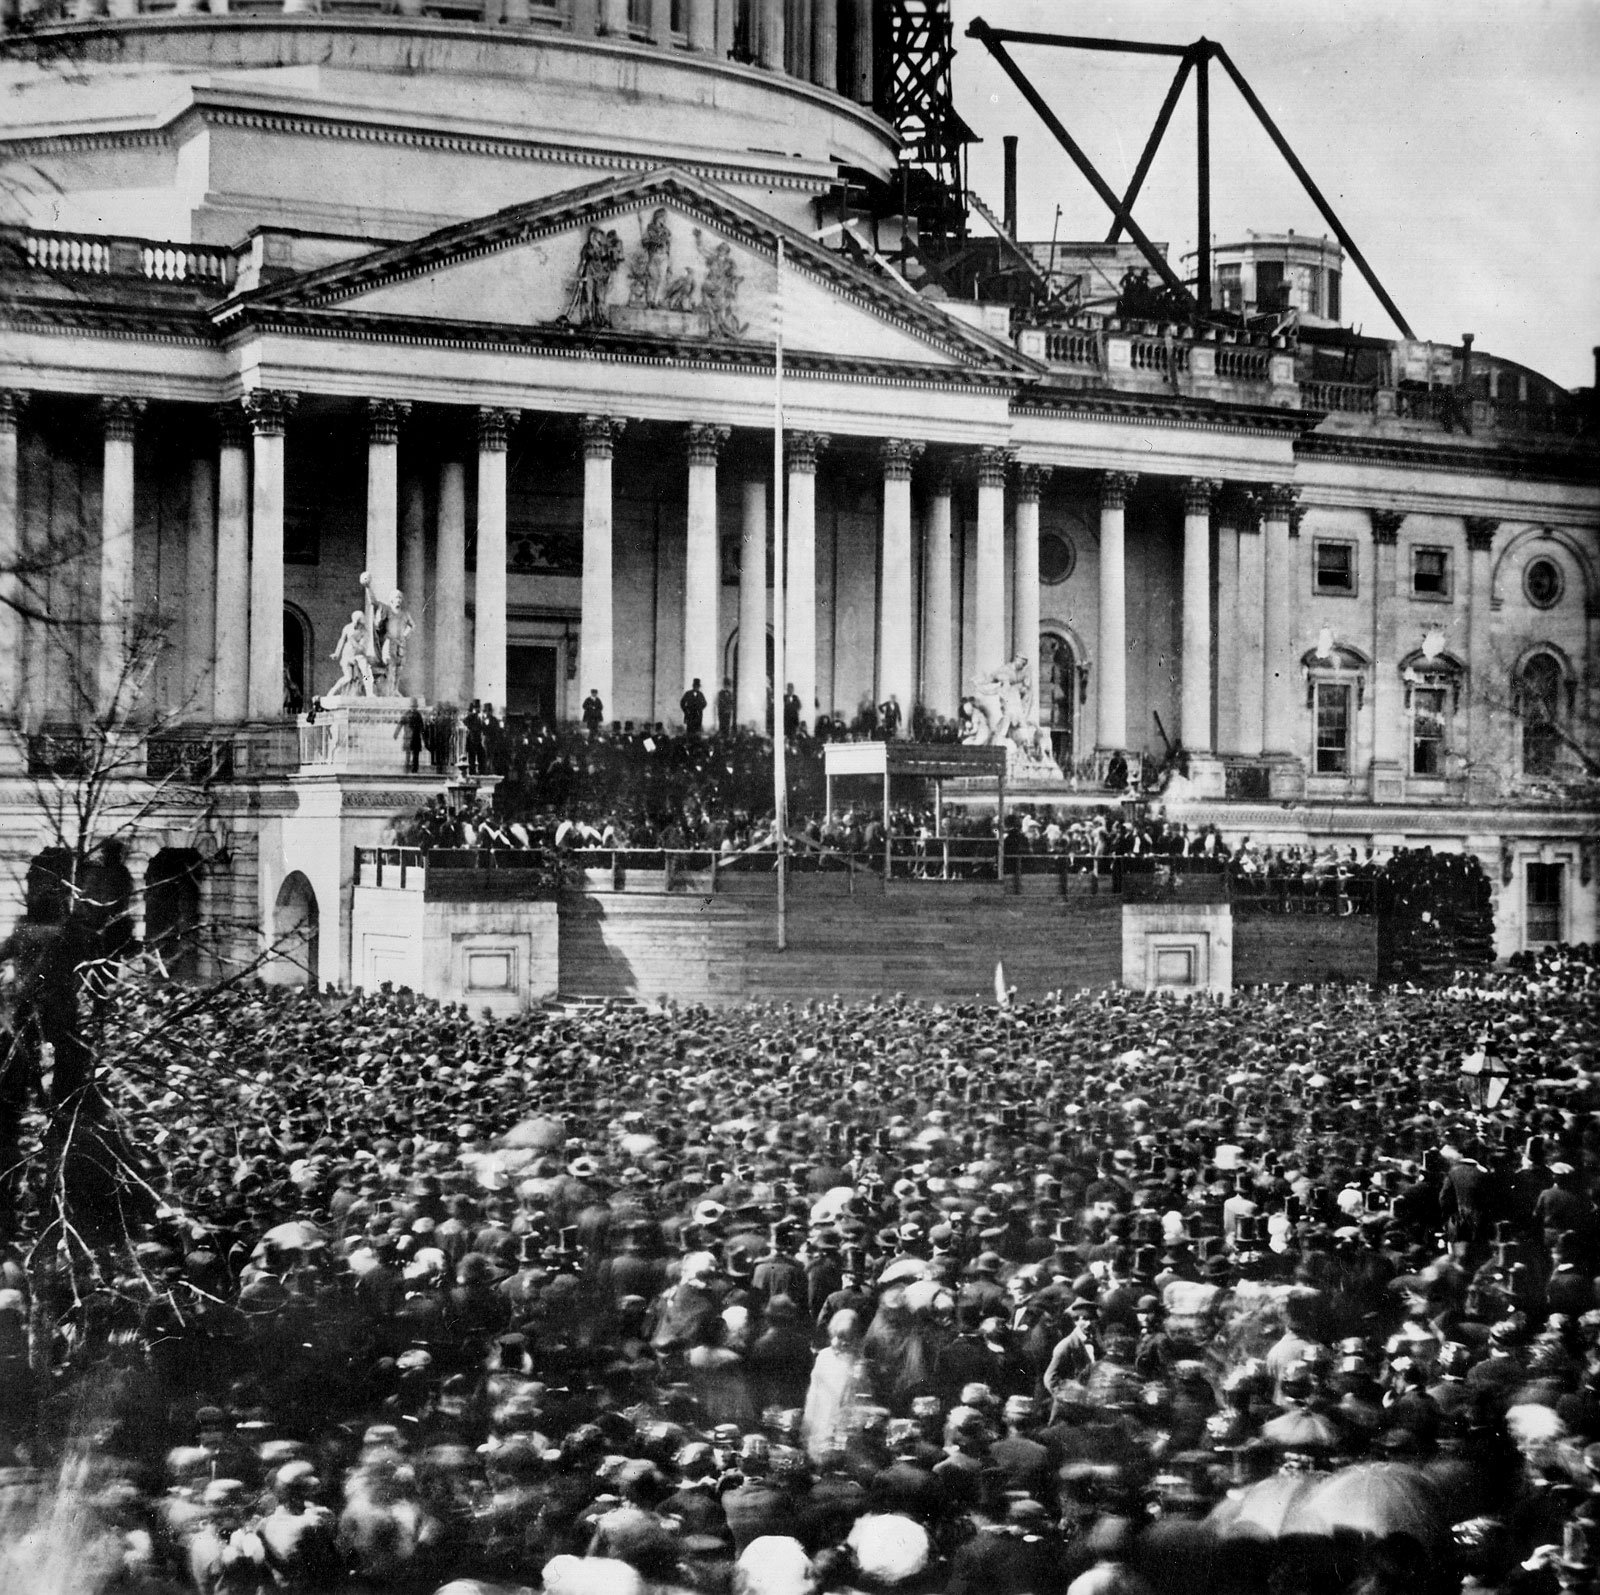 17 Inauguration of Abraham Lincoln the racists